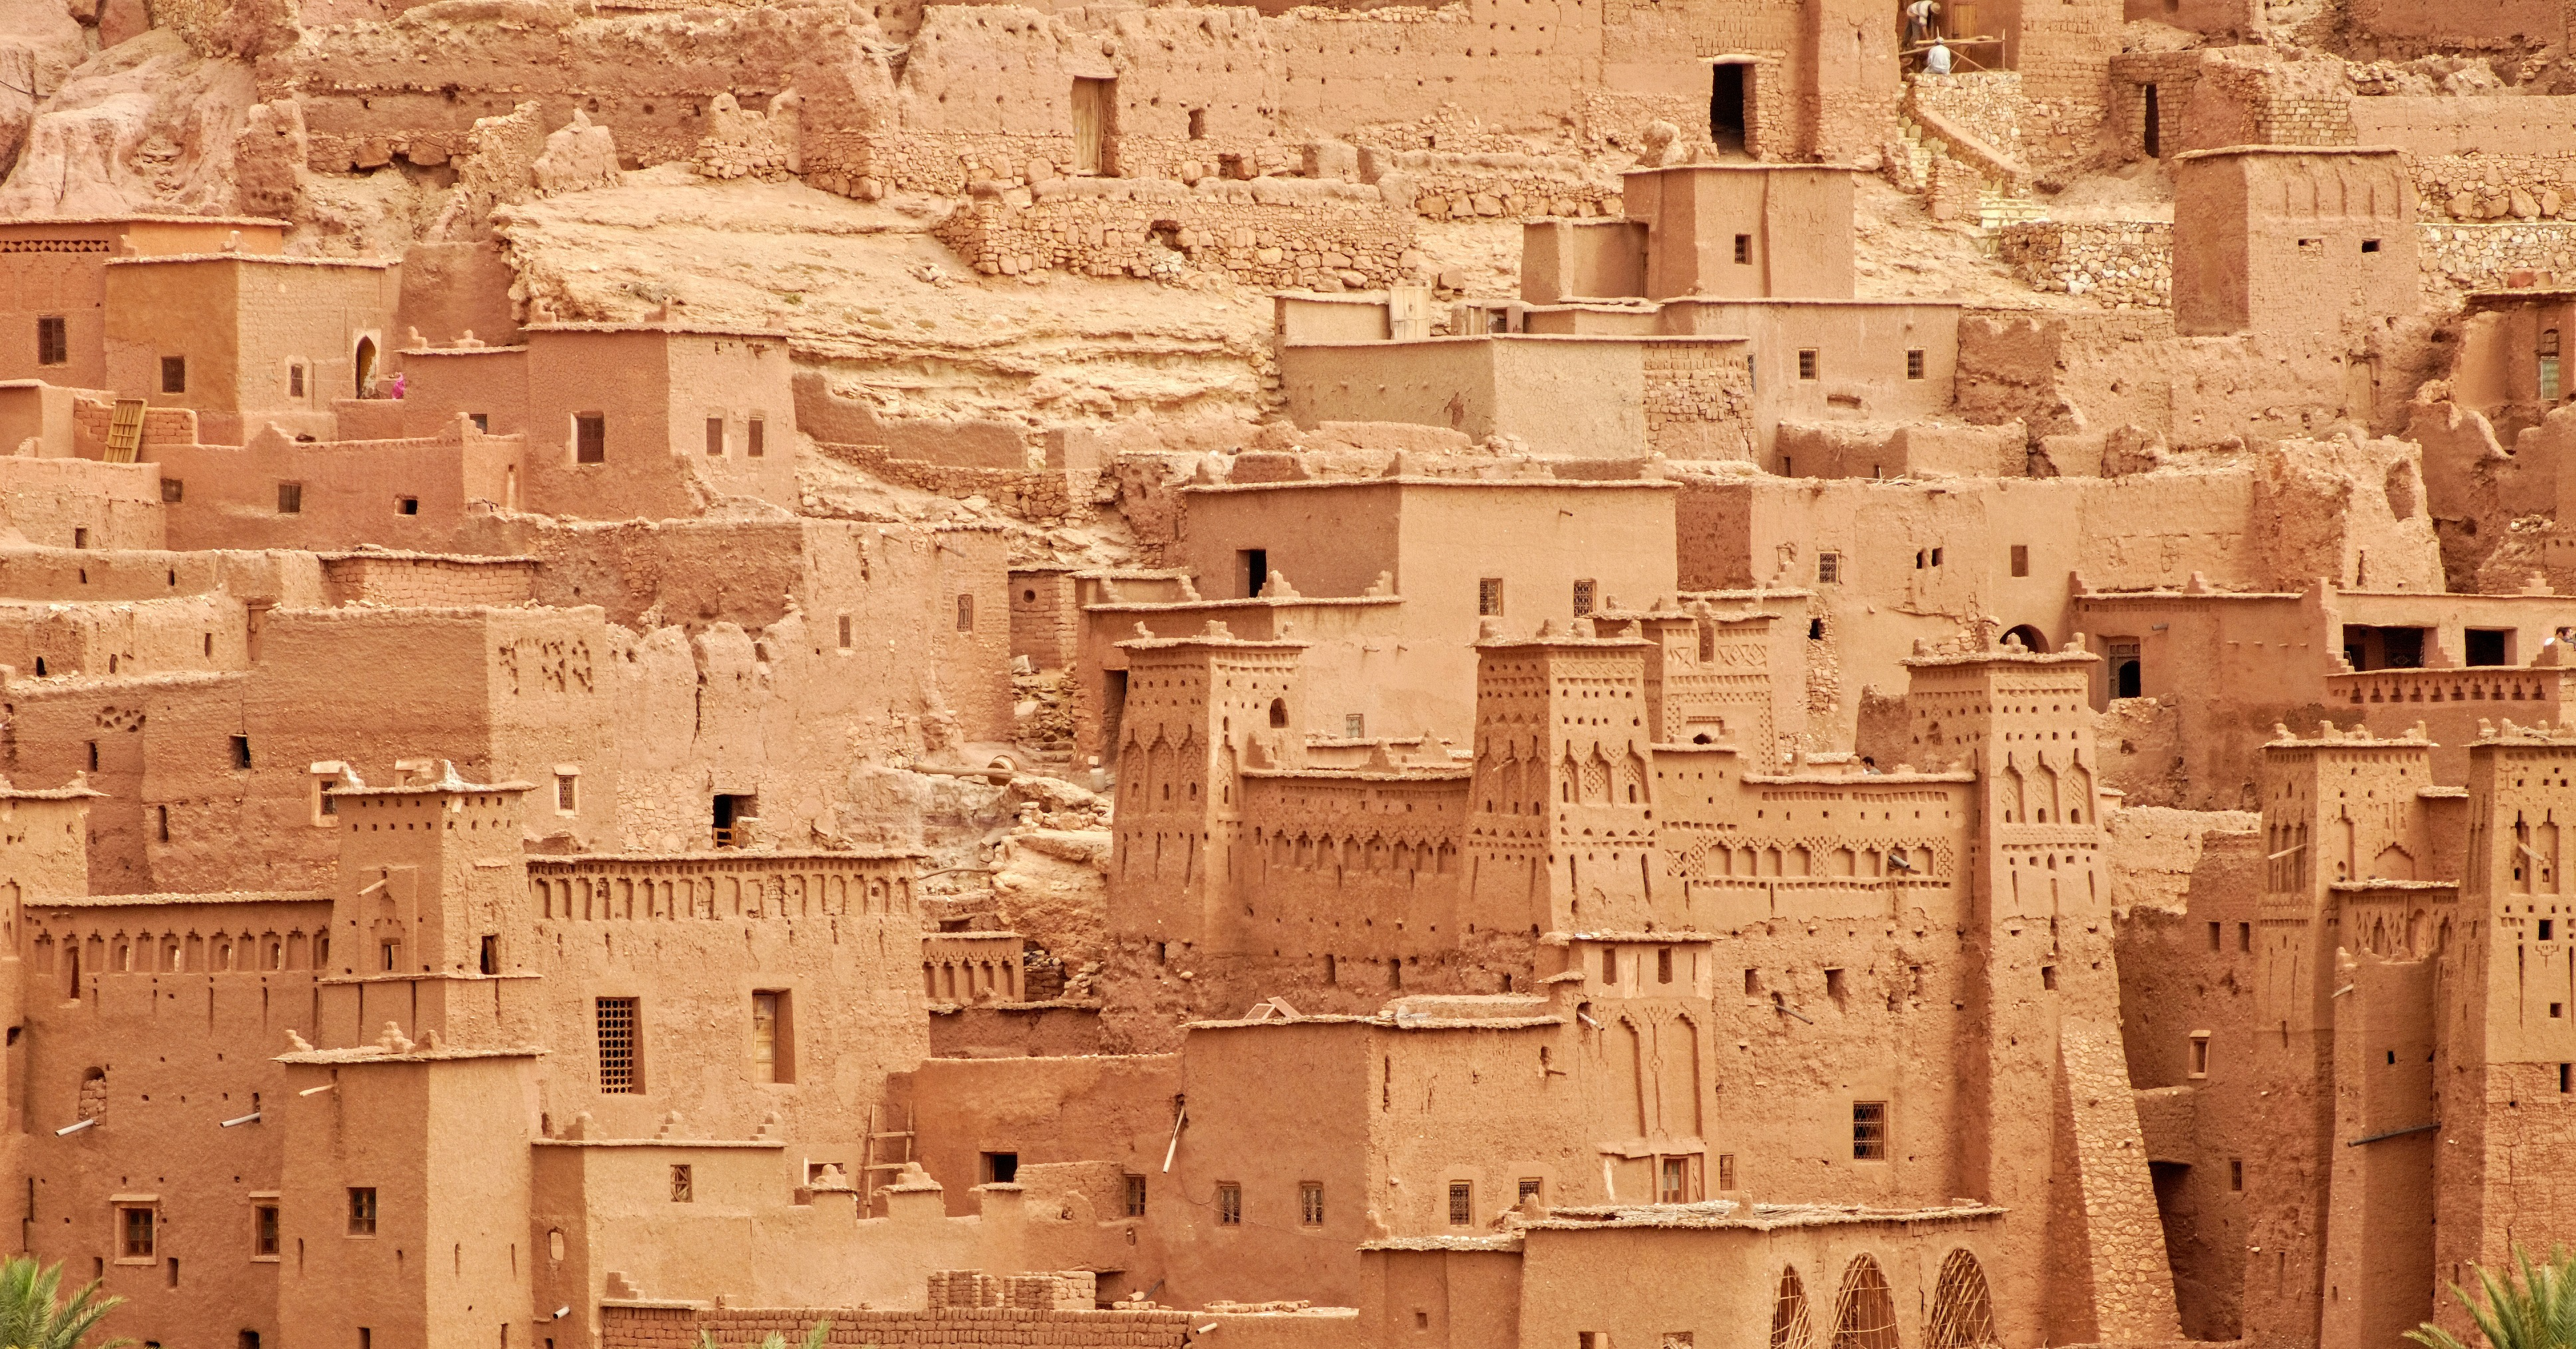 Ait Benhaddou Morocco 83 Unreal Places You Thought Only